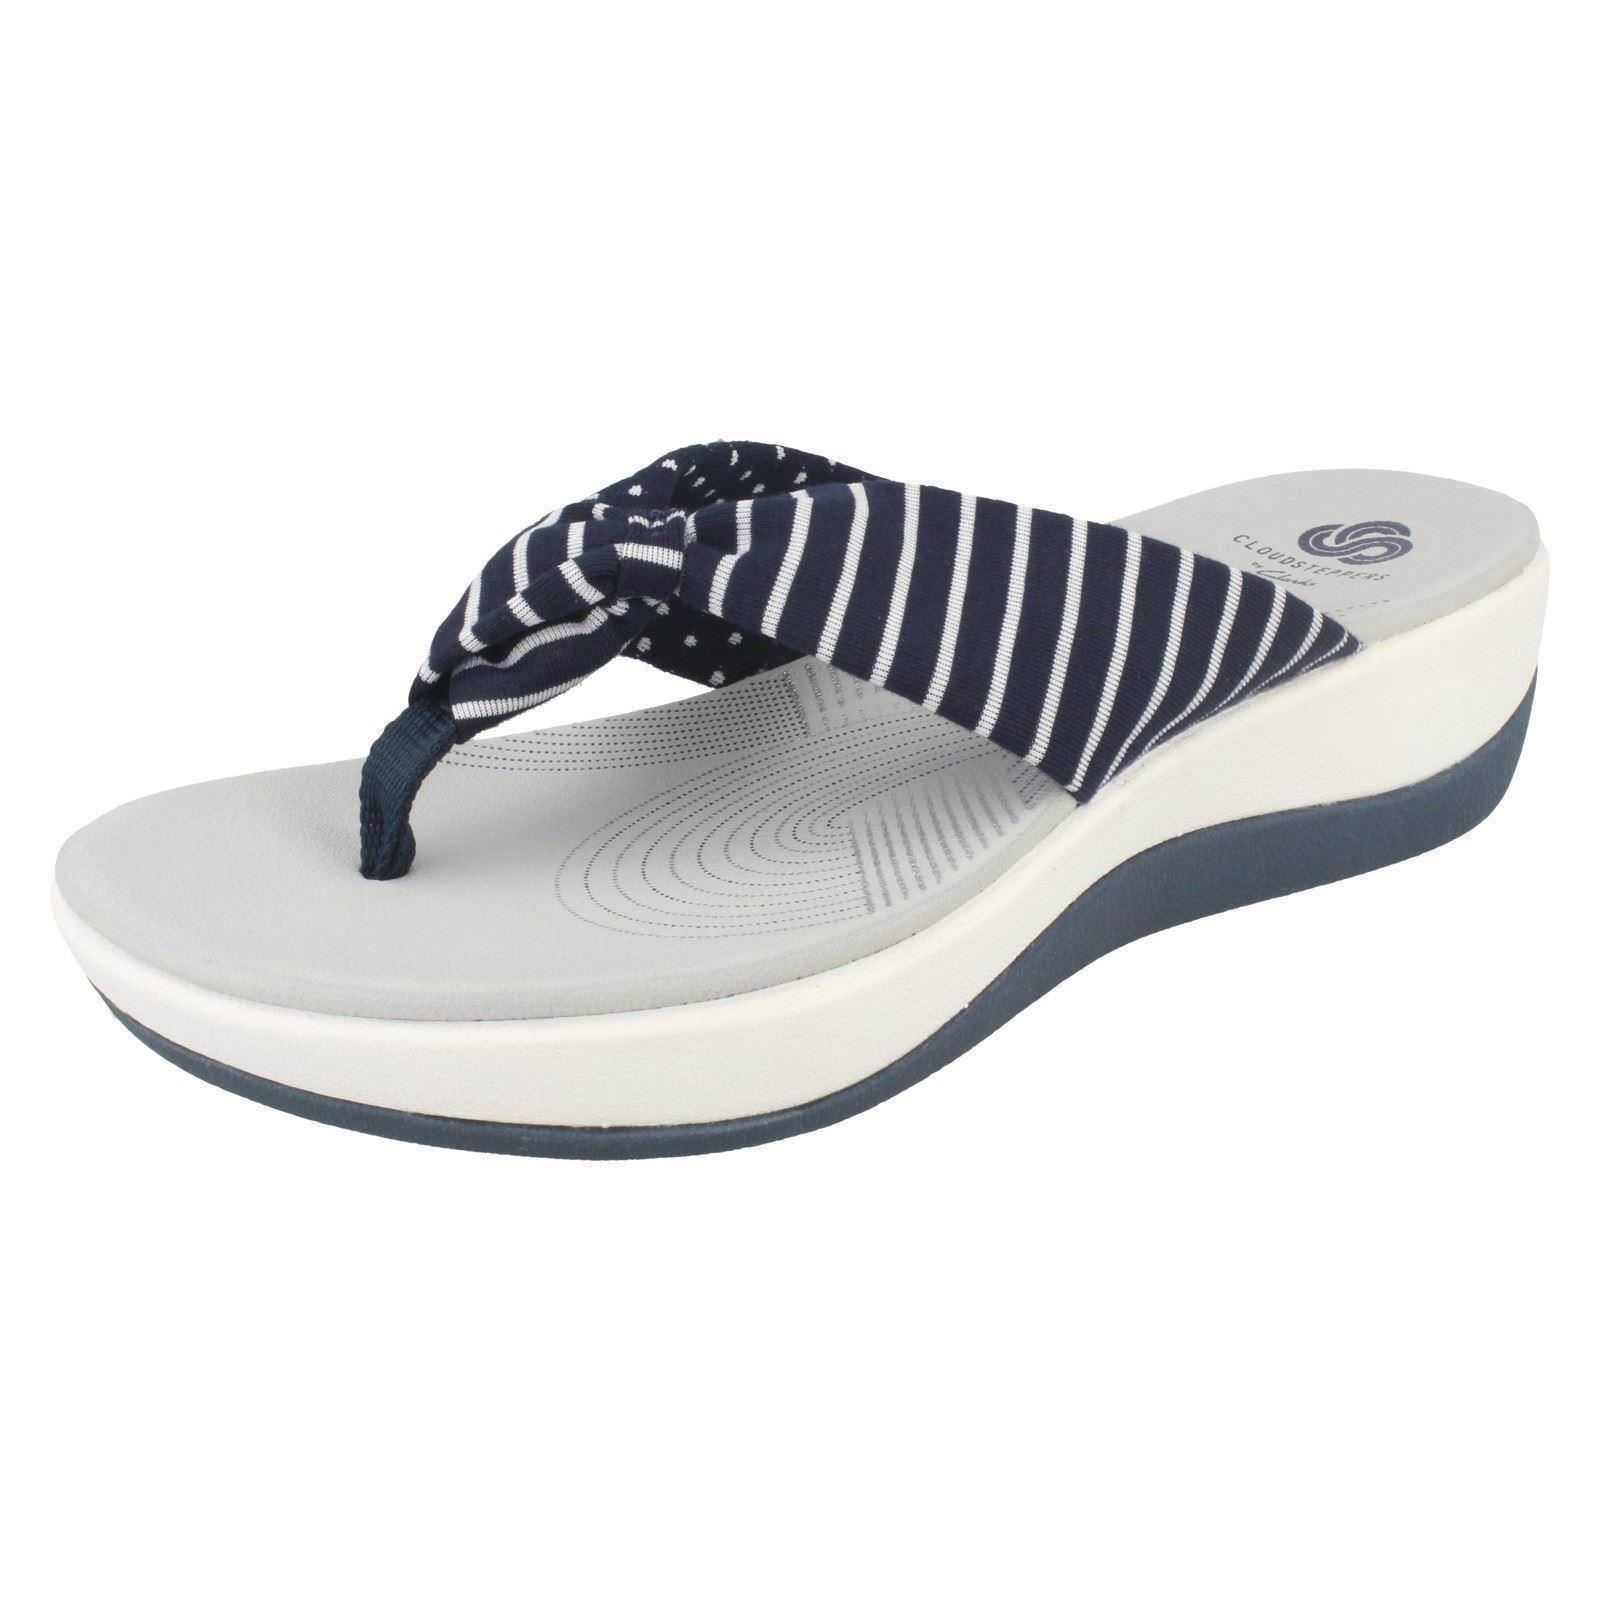 7a98f48525aa Clarks Arla Glison - Navy Print (textile) Womens Sandals 8 UK. About this  product. Picture 1 of 8  Picture 2 of 8 ...